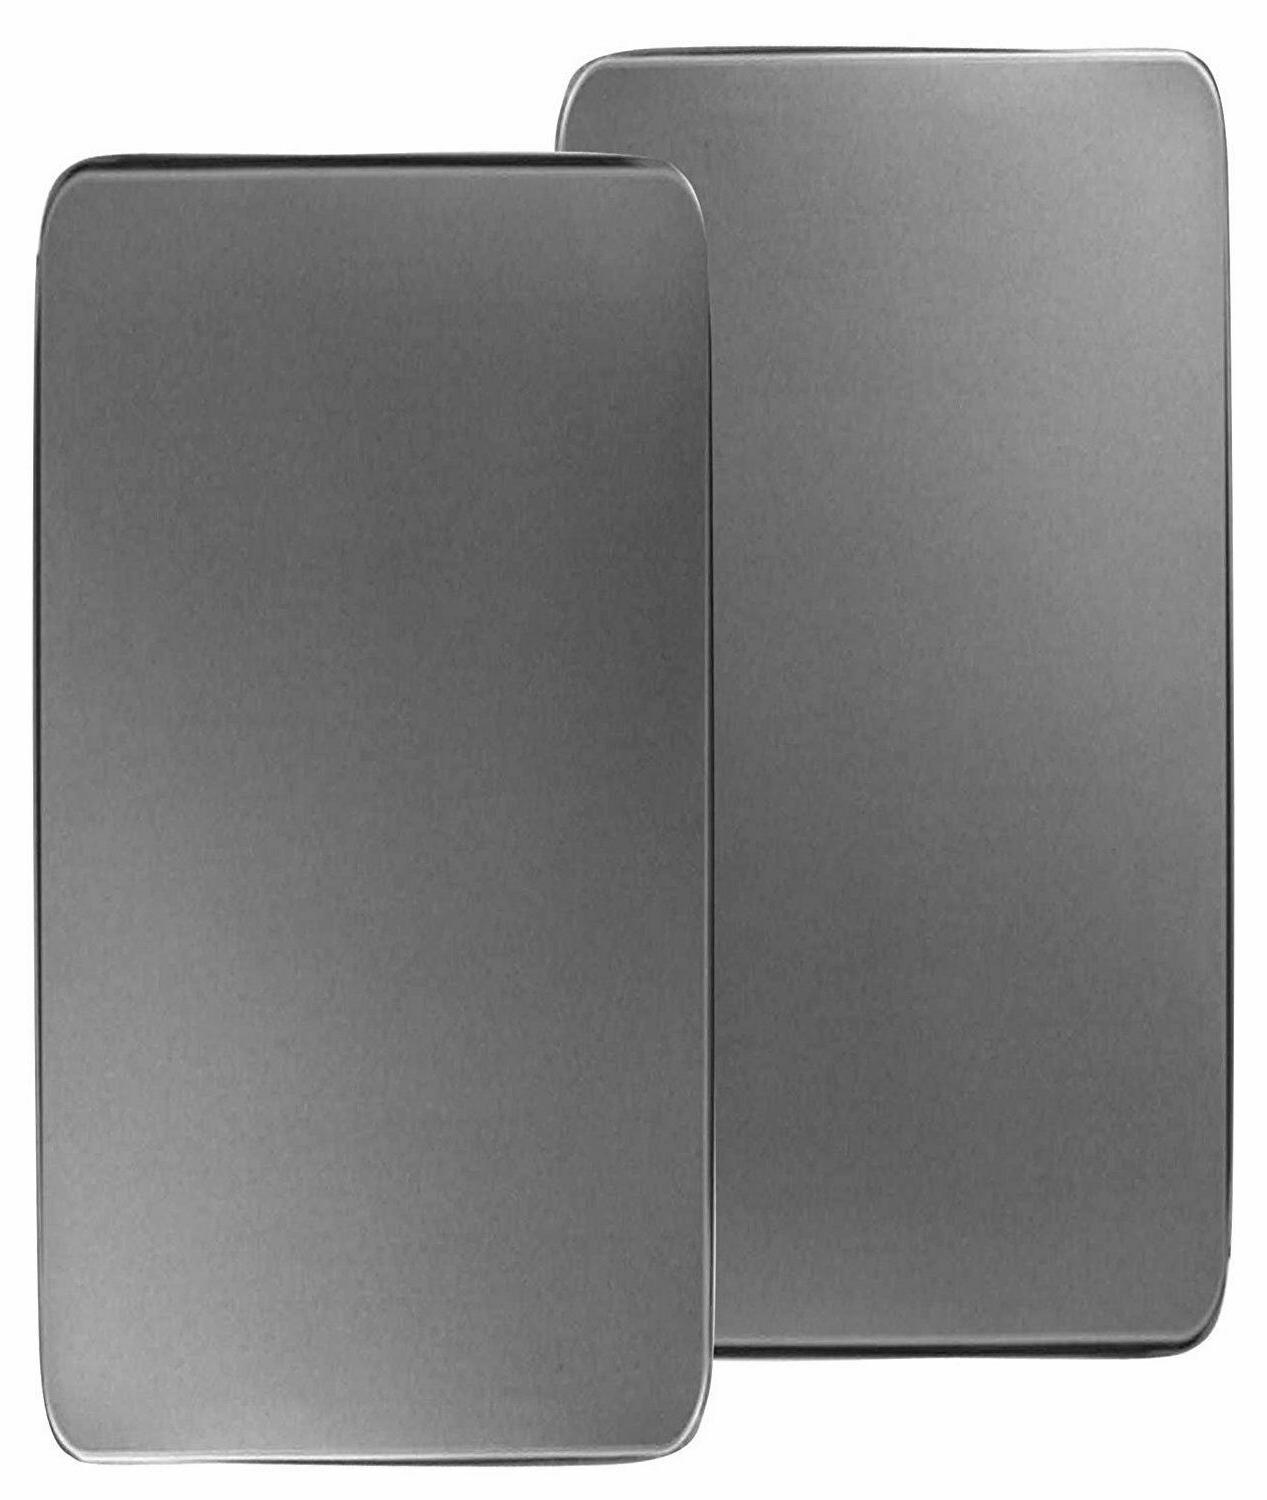 SET OF 2 STAINLESS STEEL RECTANGULAR STOVE BURNER COVERS GAS